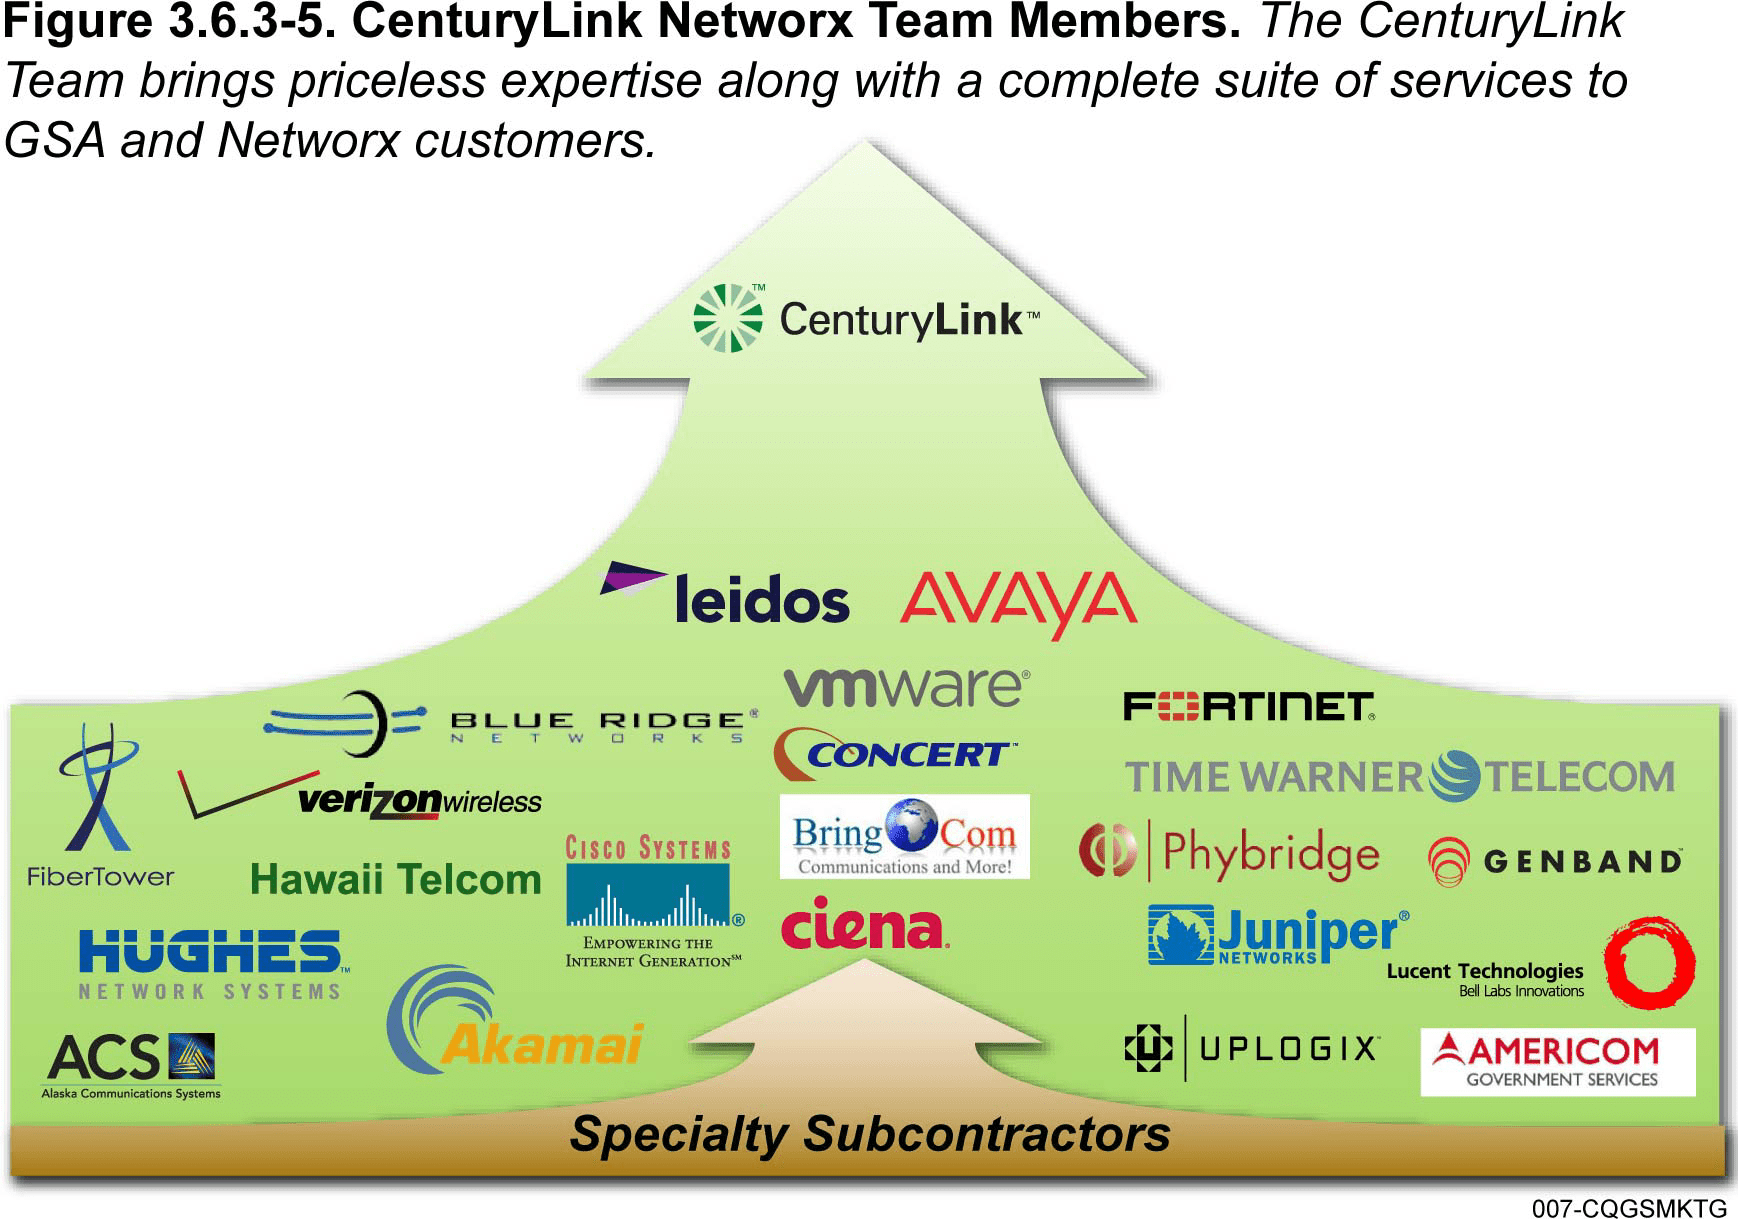 Centurylink Net Login >> CenturyLink Networx Team | CenturyLink Government